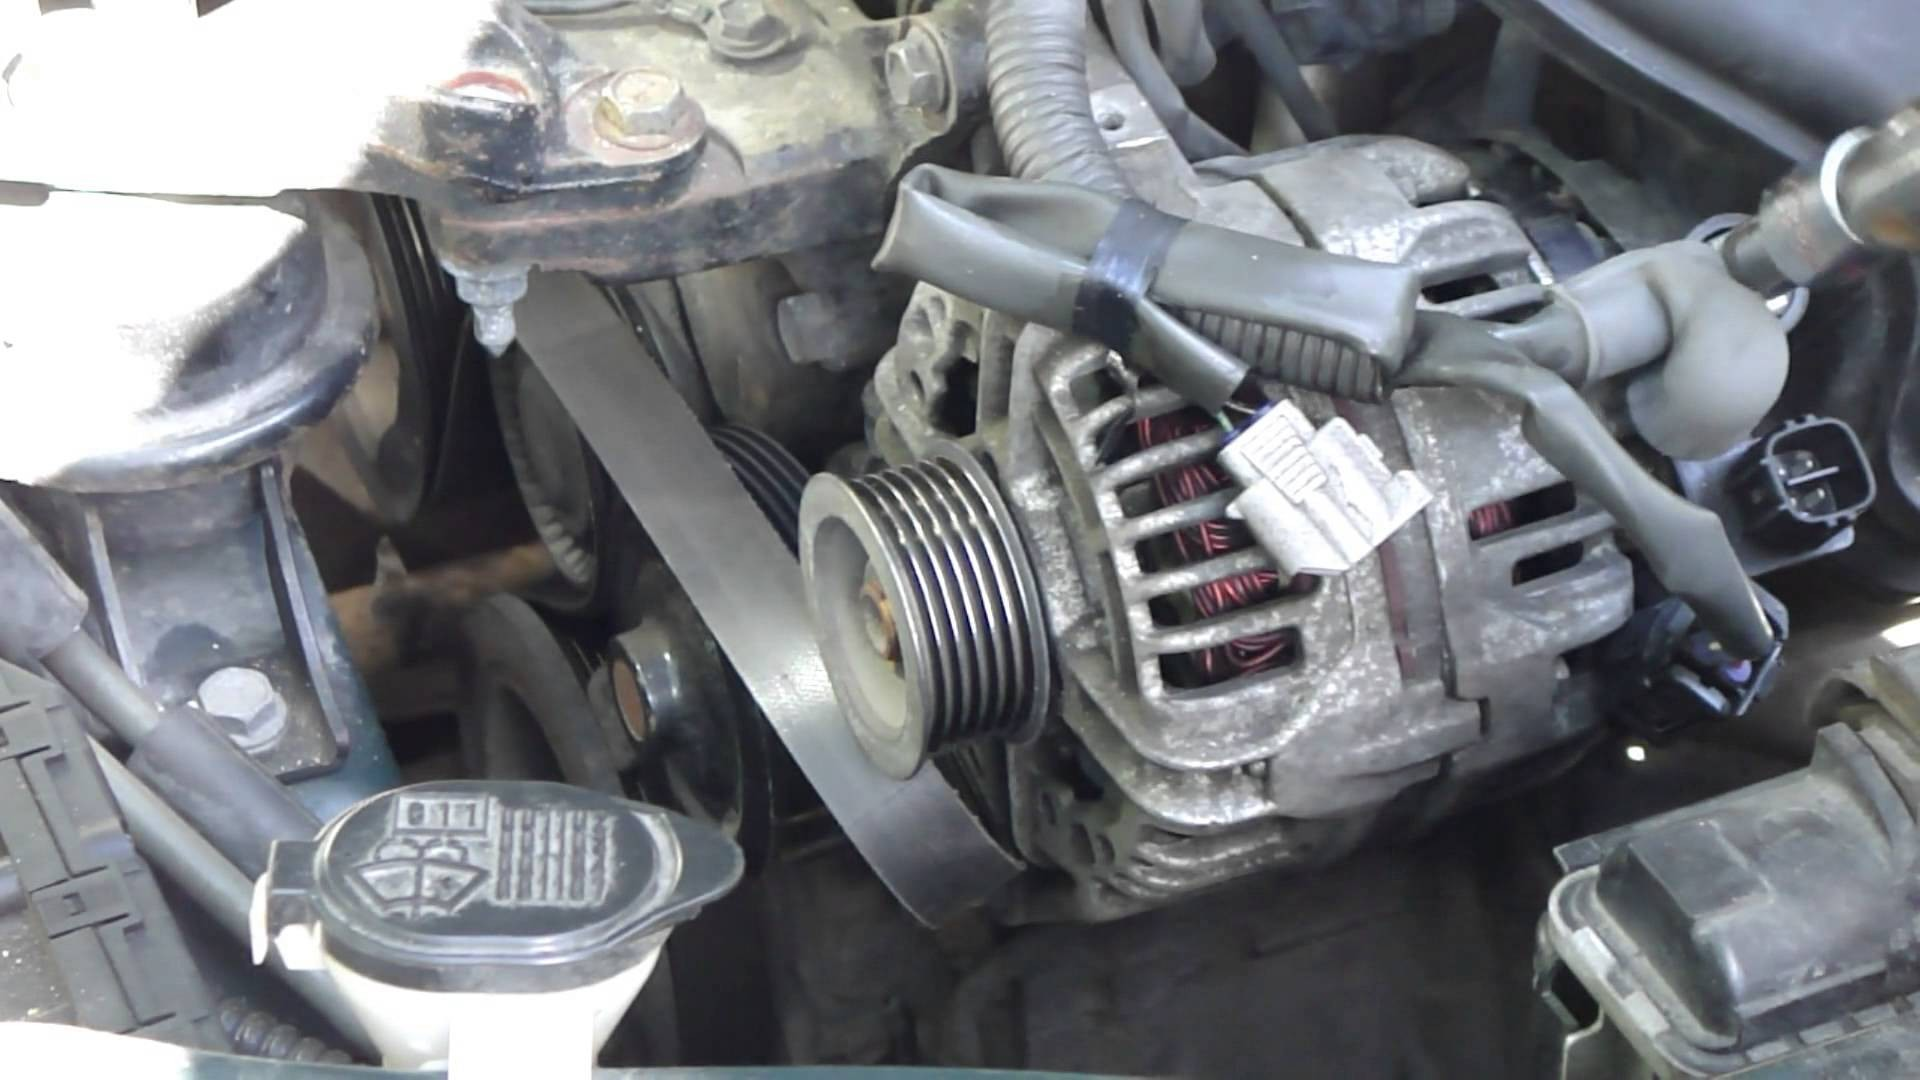 hight resolution of 1991 toyota corolla engine diagram how to change alternator toyota corolla vvt i engine years 2000